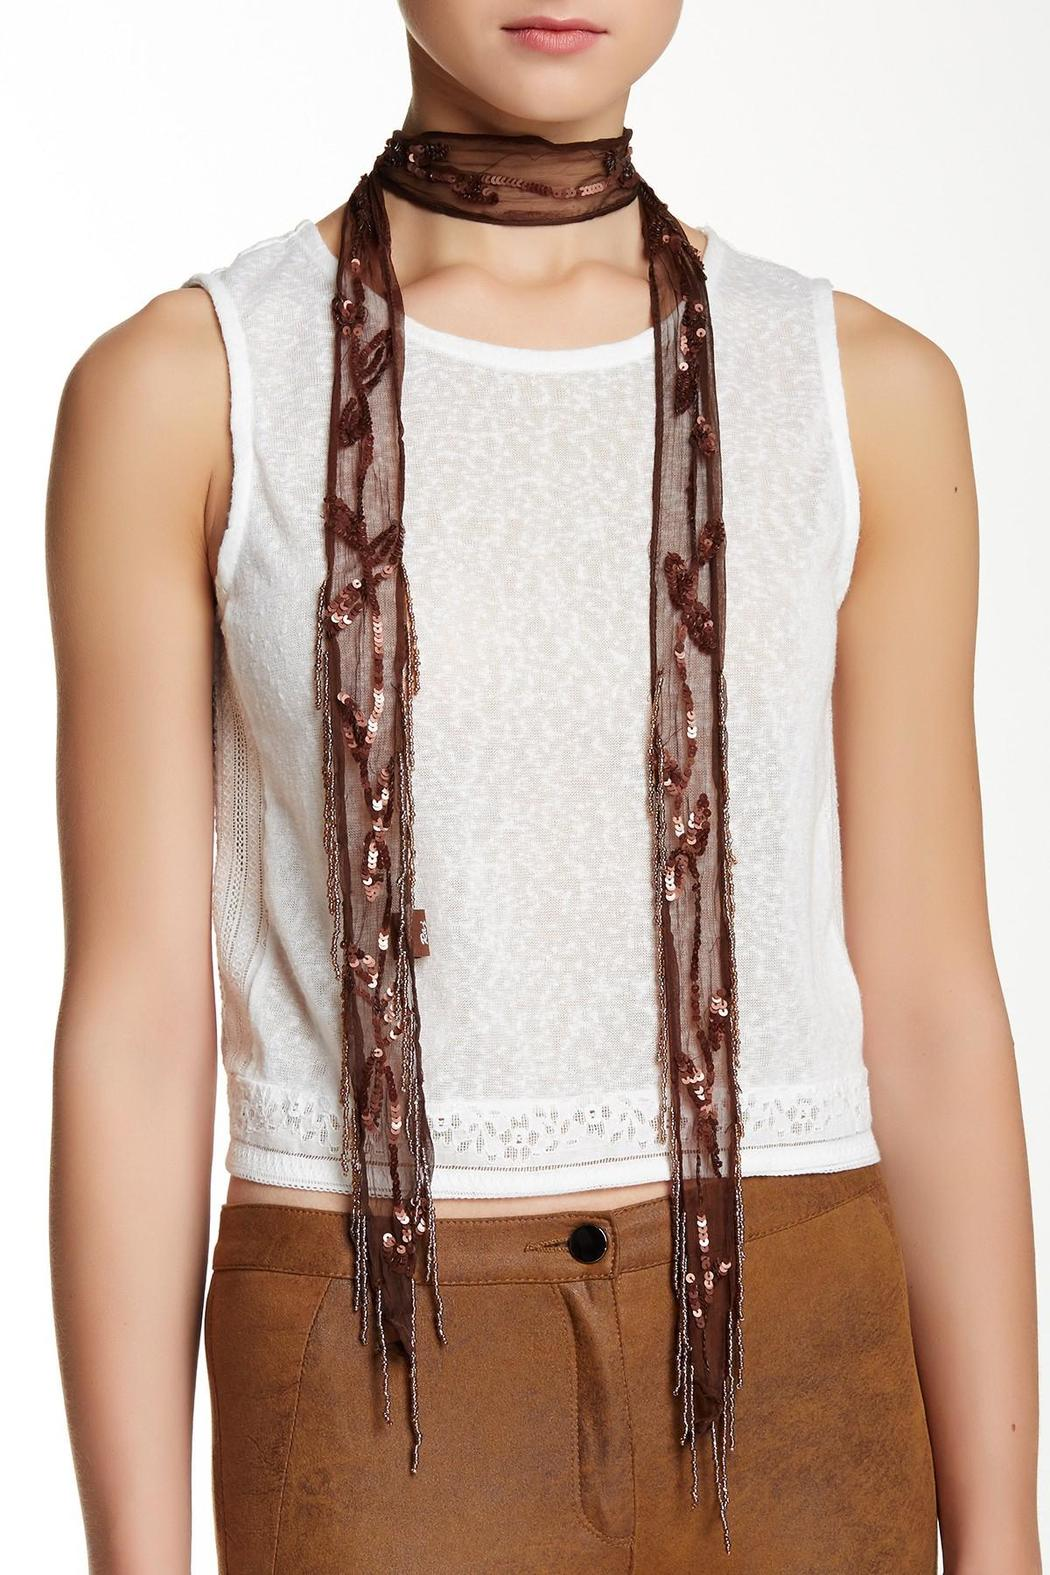 Raj Lotus Lariat Beaded Scarf - Main Image